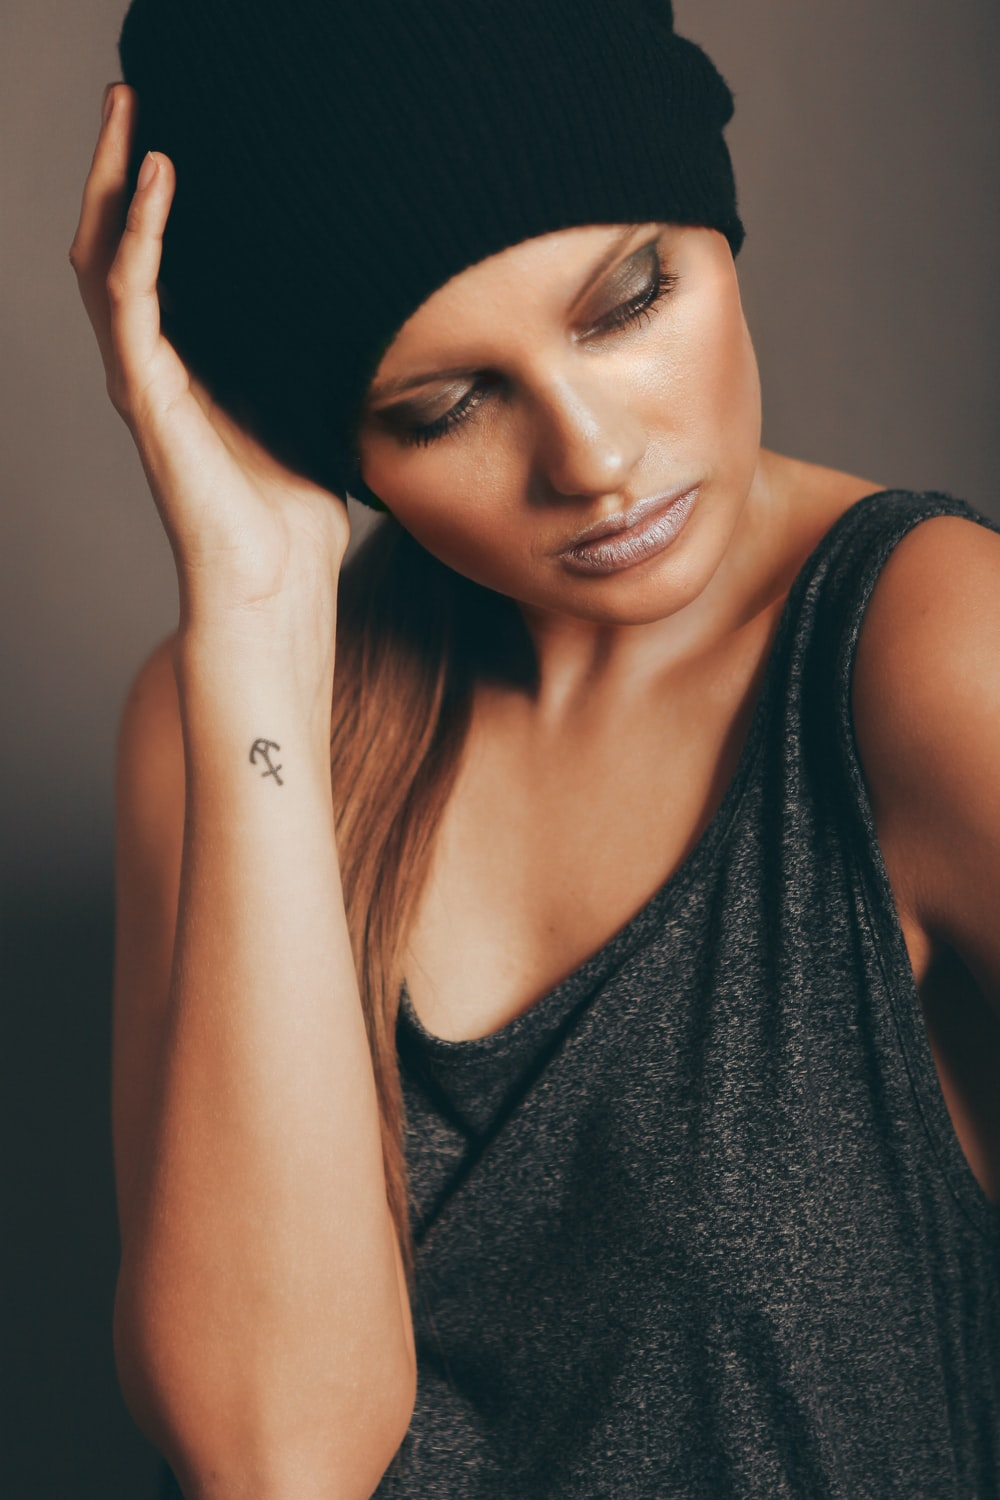 woman wearing black tank top and black knit cap holding head